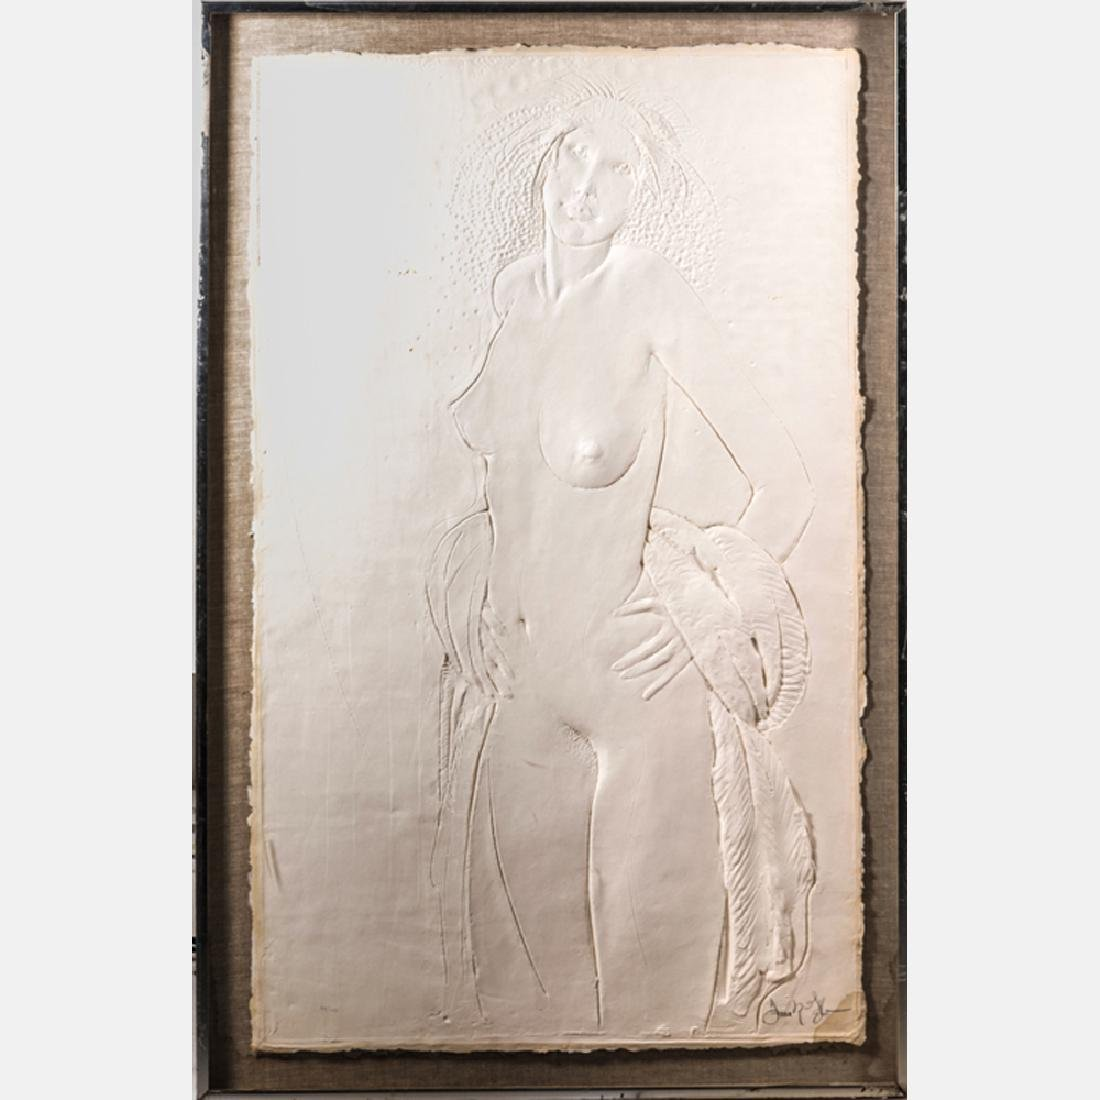 Frank Gallo (b. 1933) Dancer, Embossed paper relief